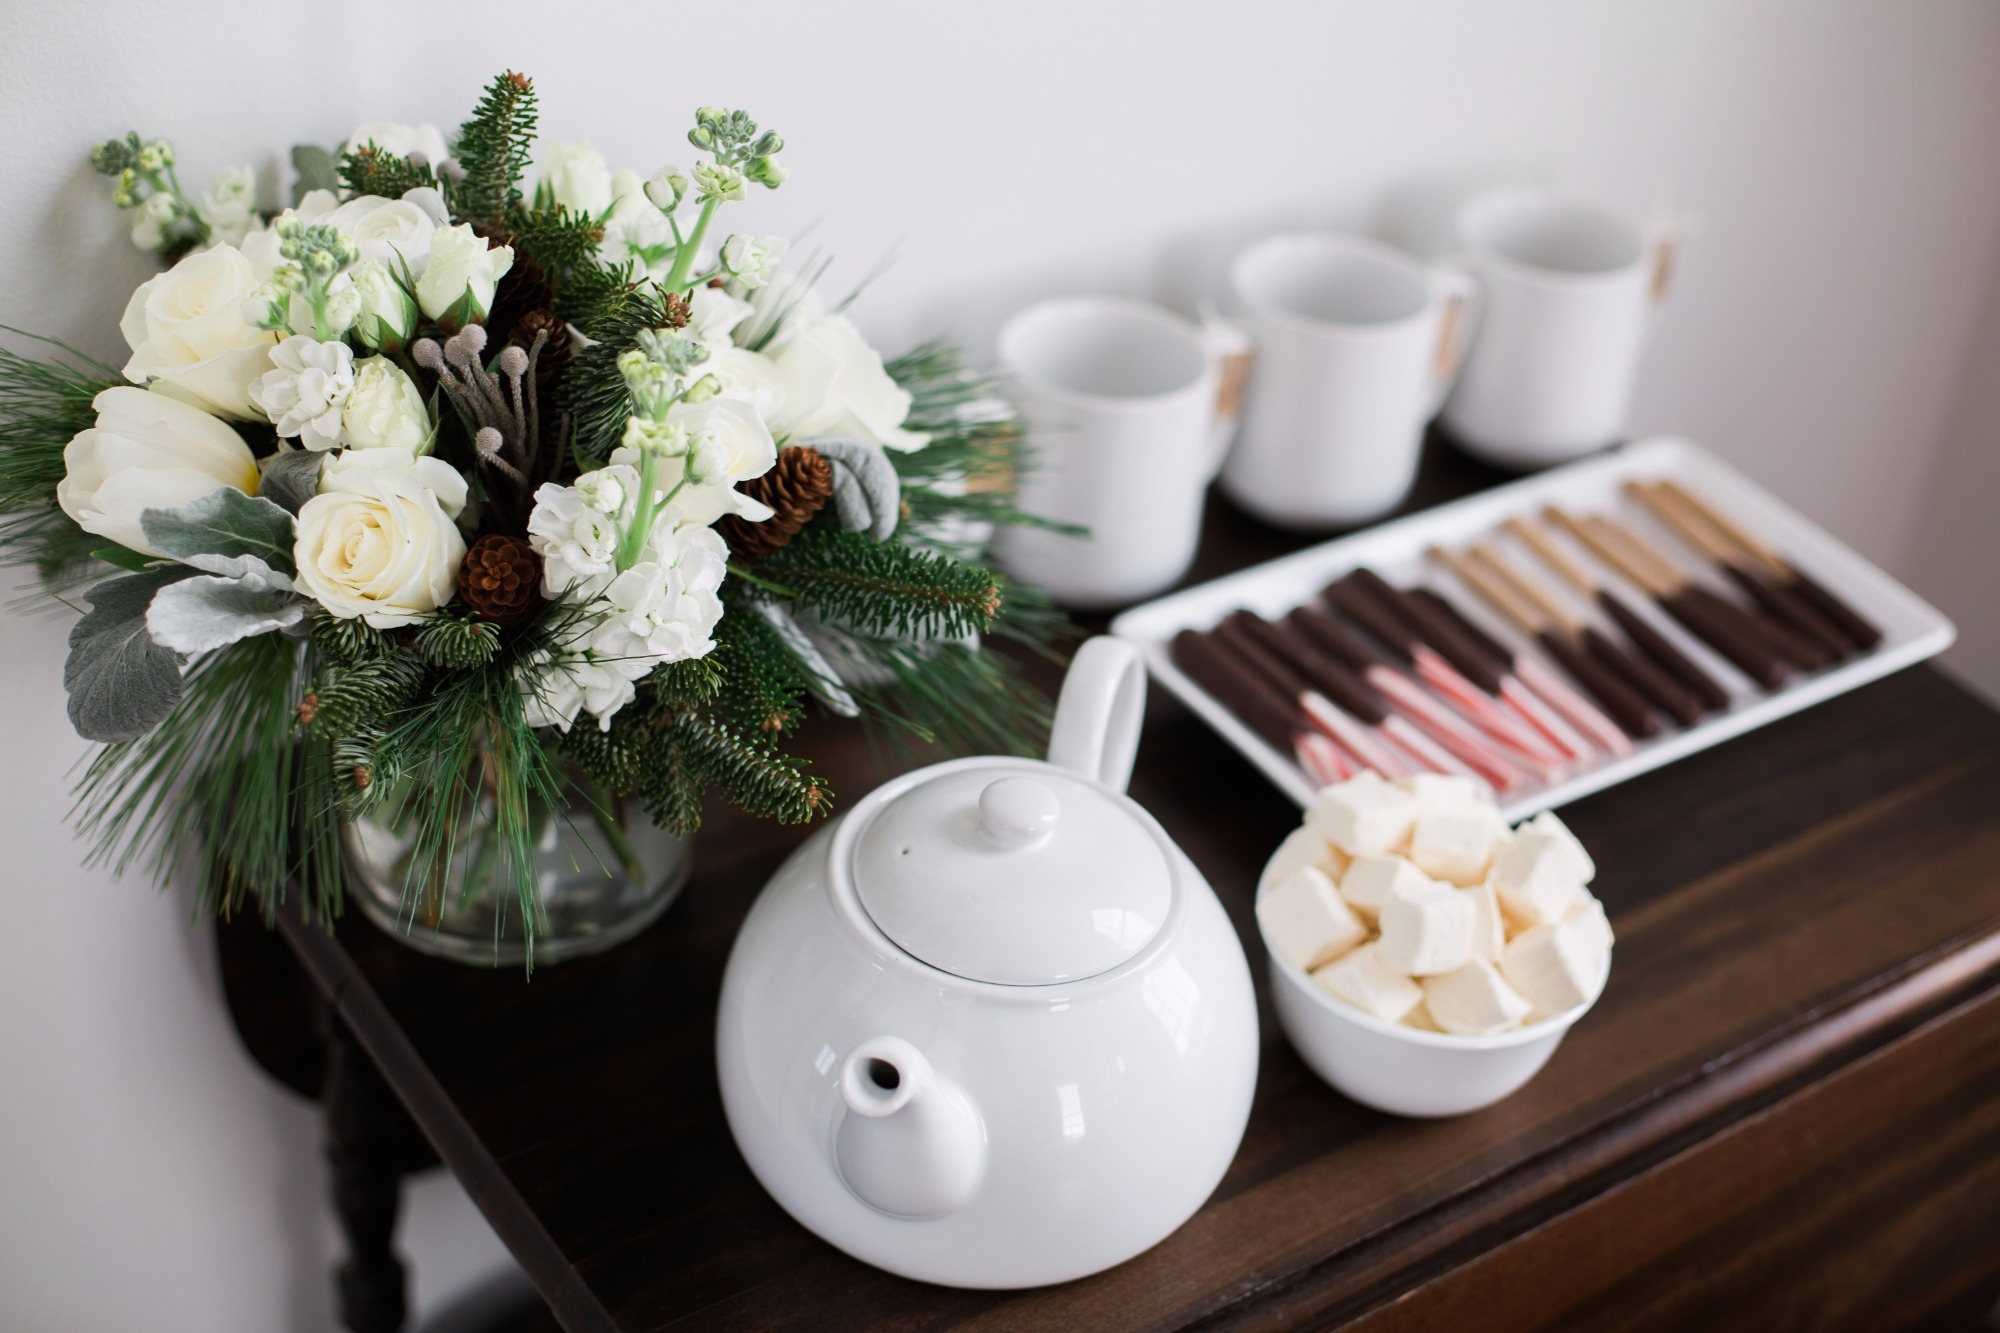 Hot Cocoa Bar from Vintage Little Deer Birthday Party by Cherry Blossom Events | Black Twine